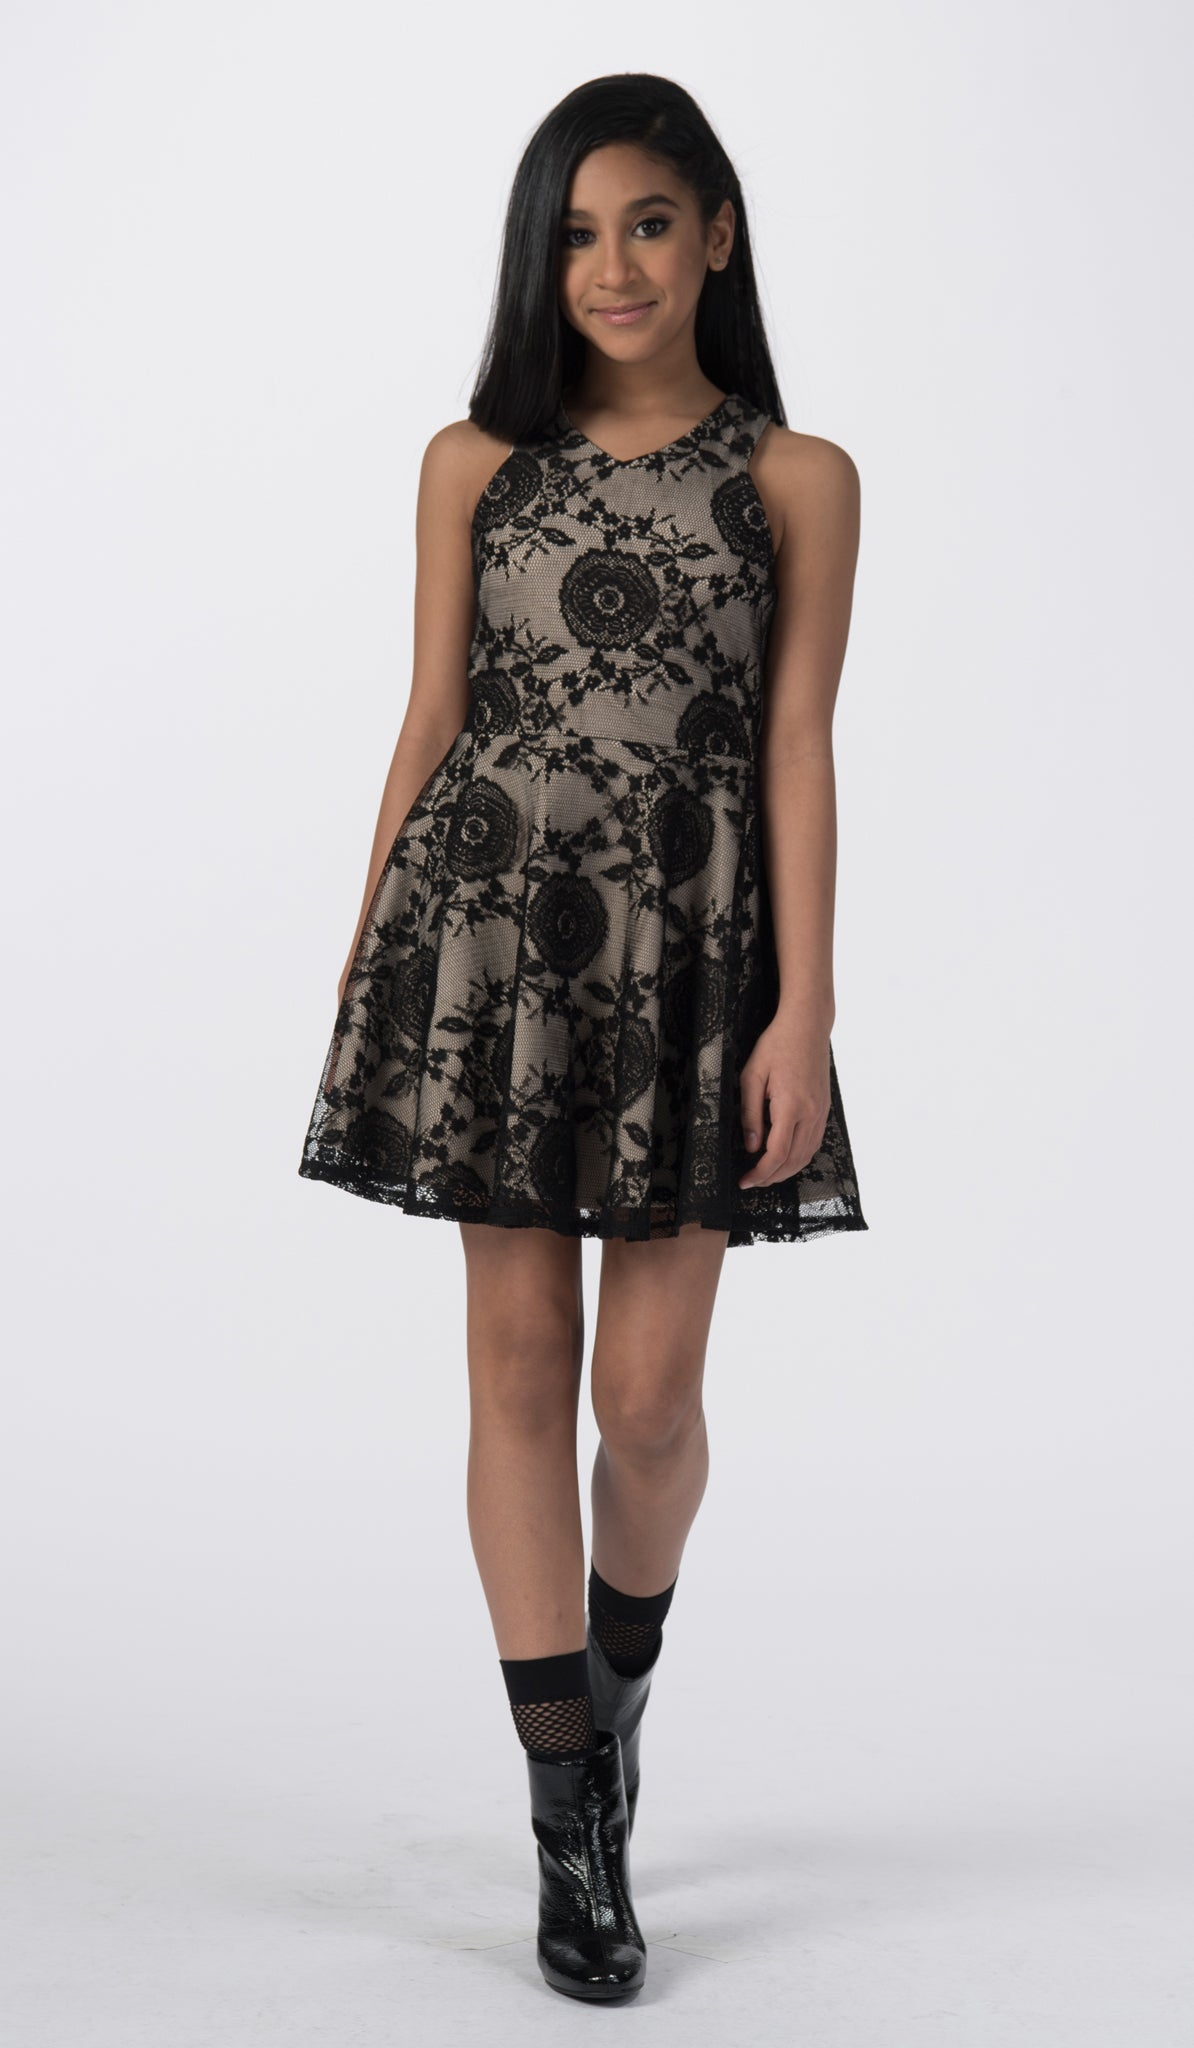 Sally Miller black lace fit and flare special occasion dress front view.